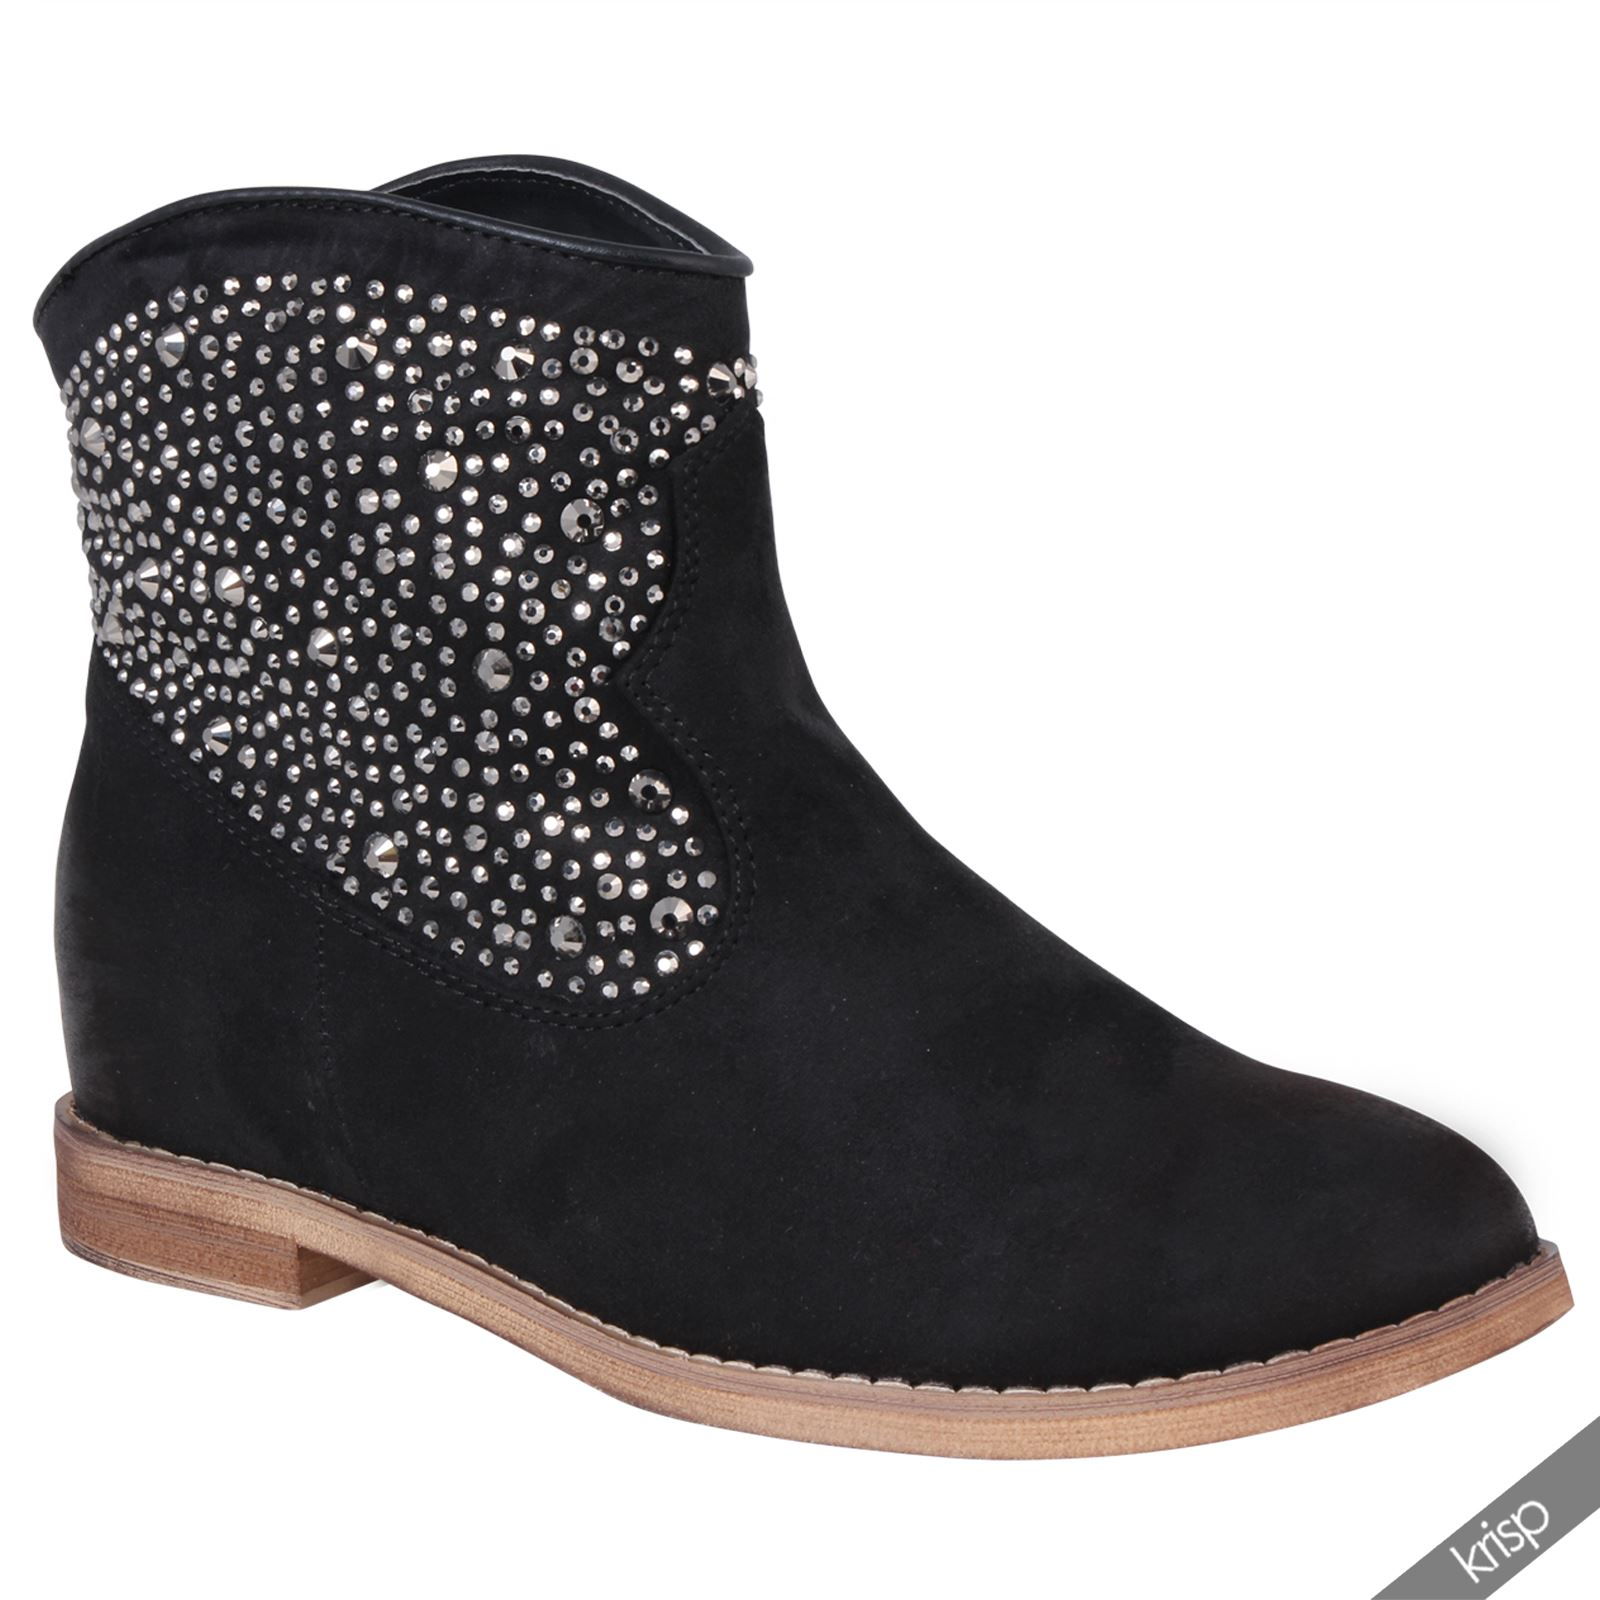 Womens Studded Suede Flat Heel Ankle Boots Slouchy Pixy ...